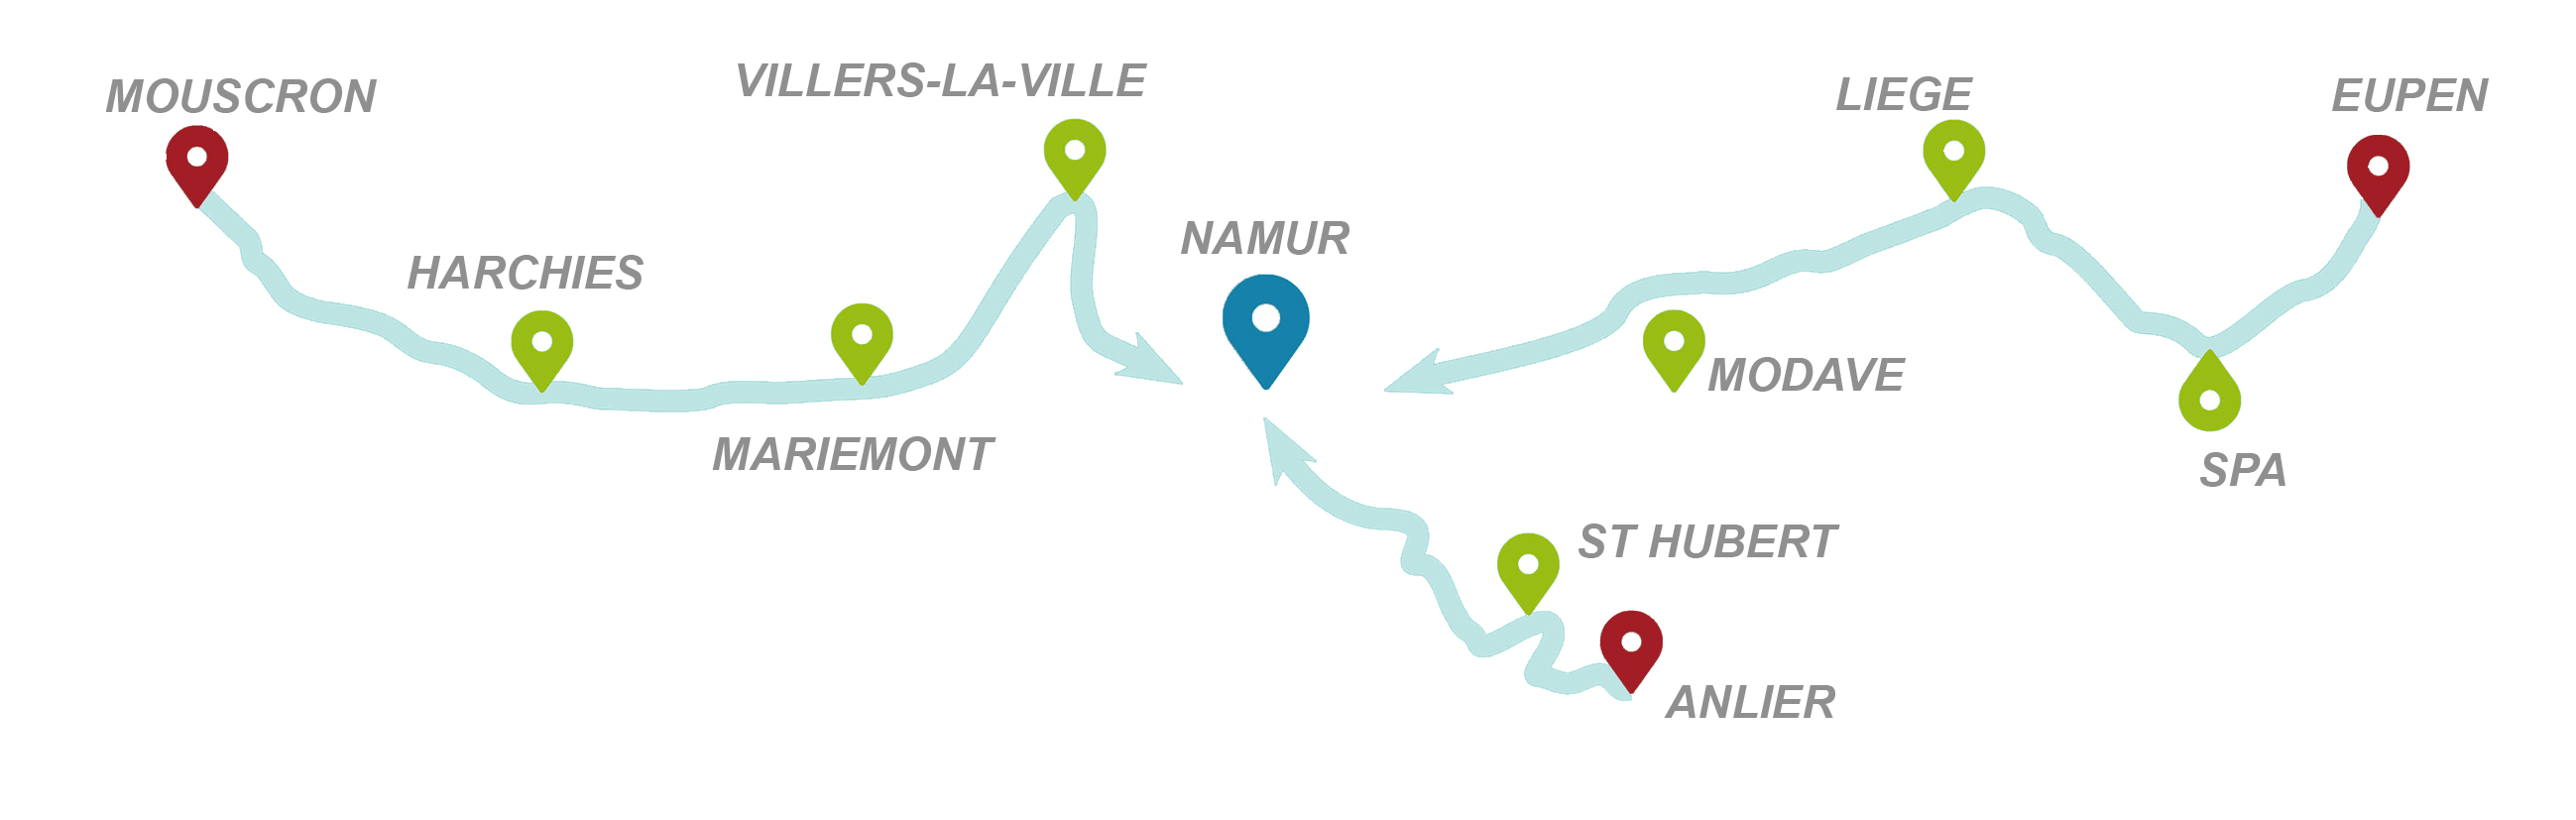 image parcours.jpg